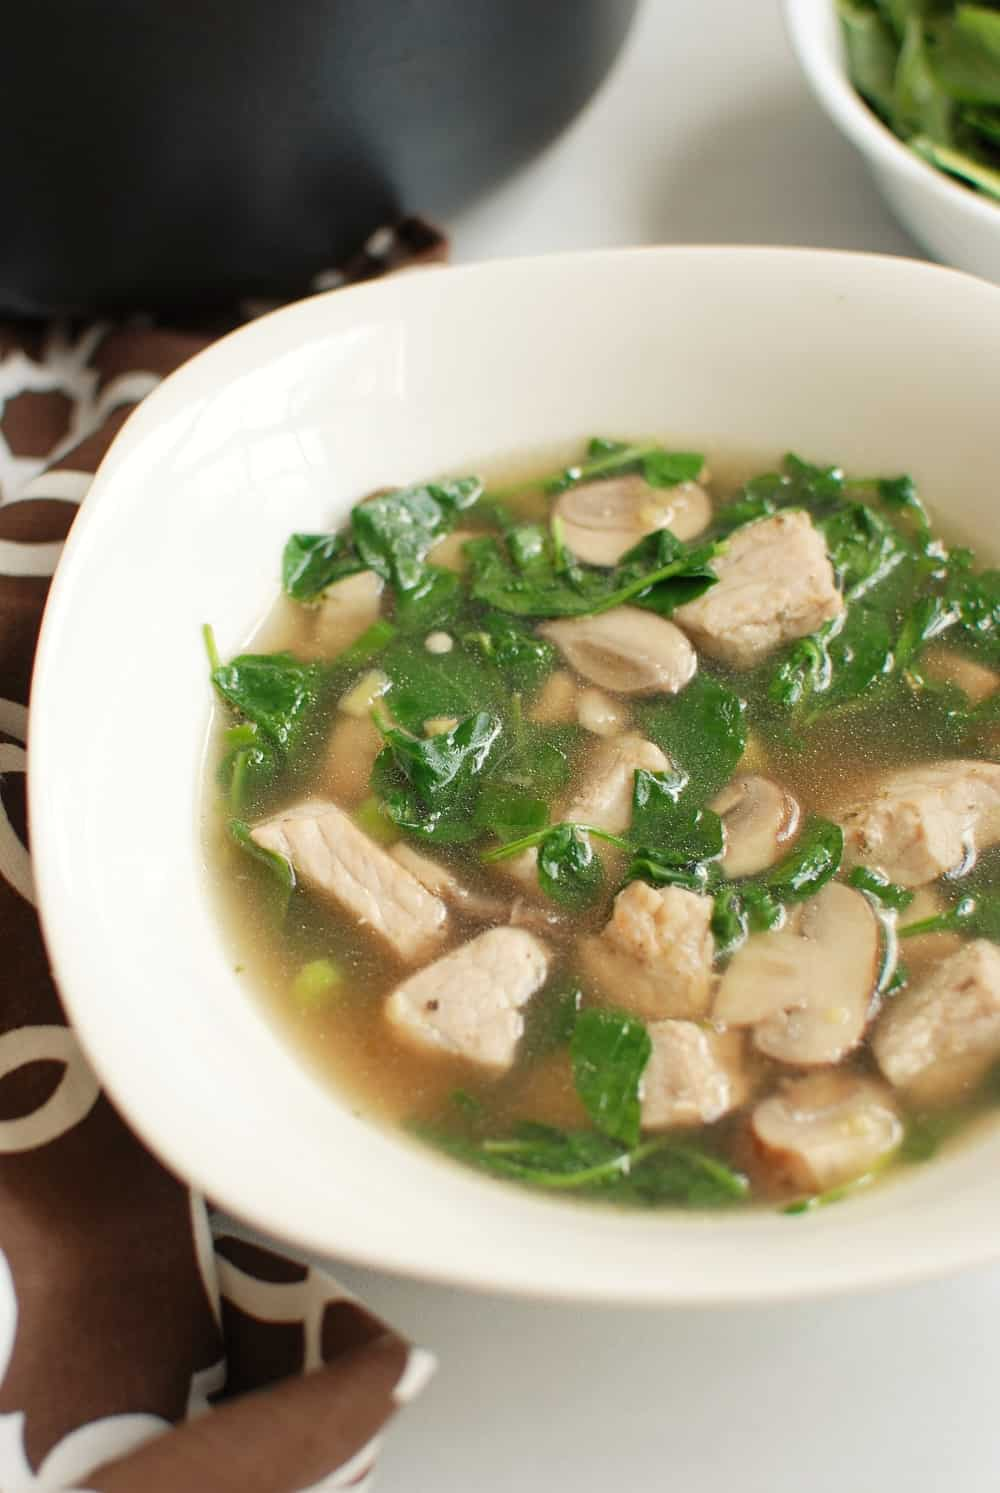 Bowl of pork watercress soup